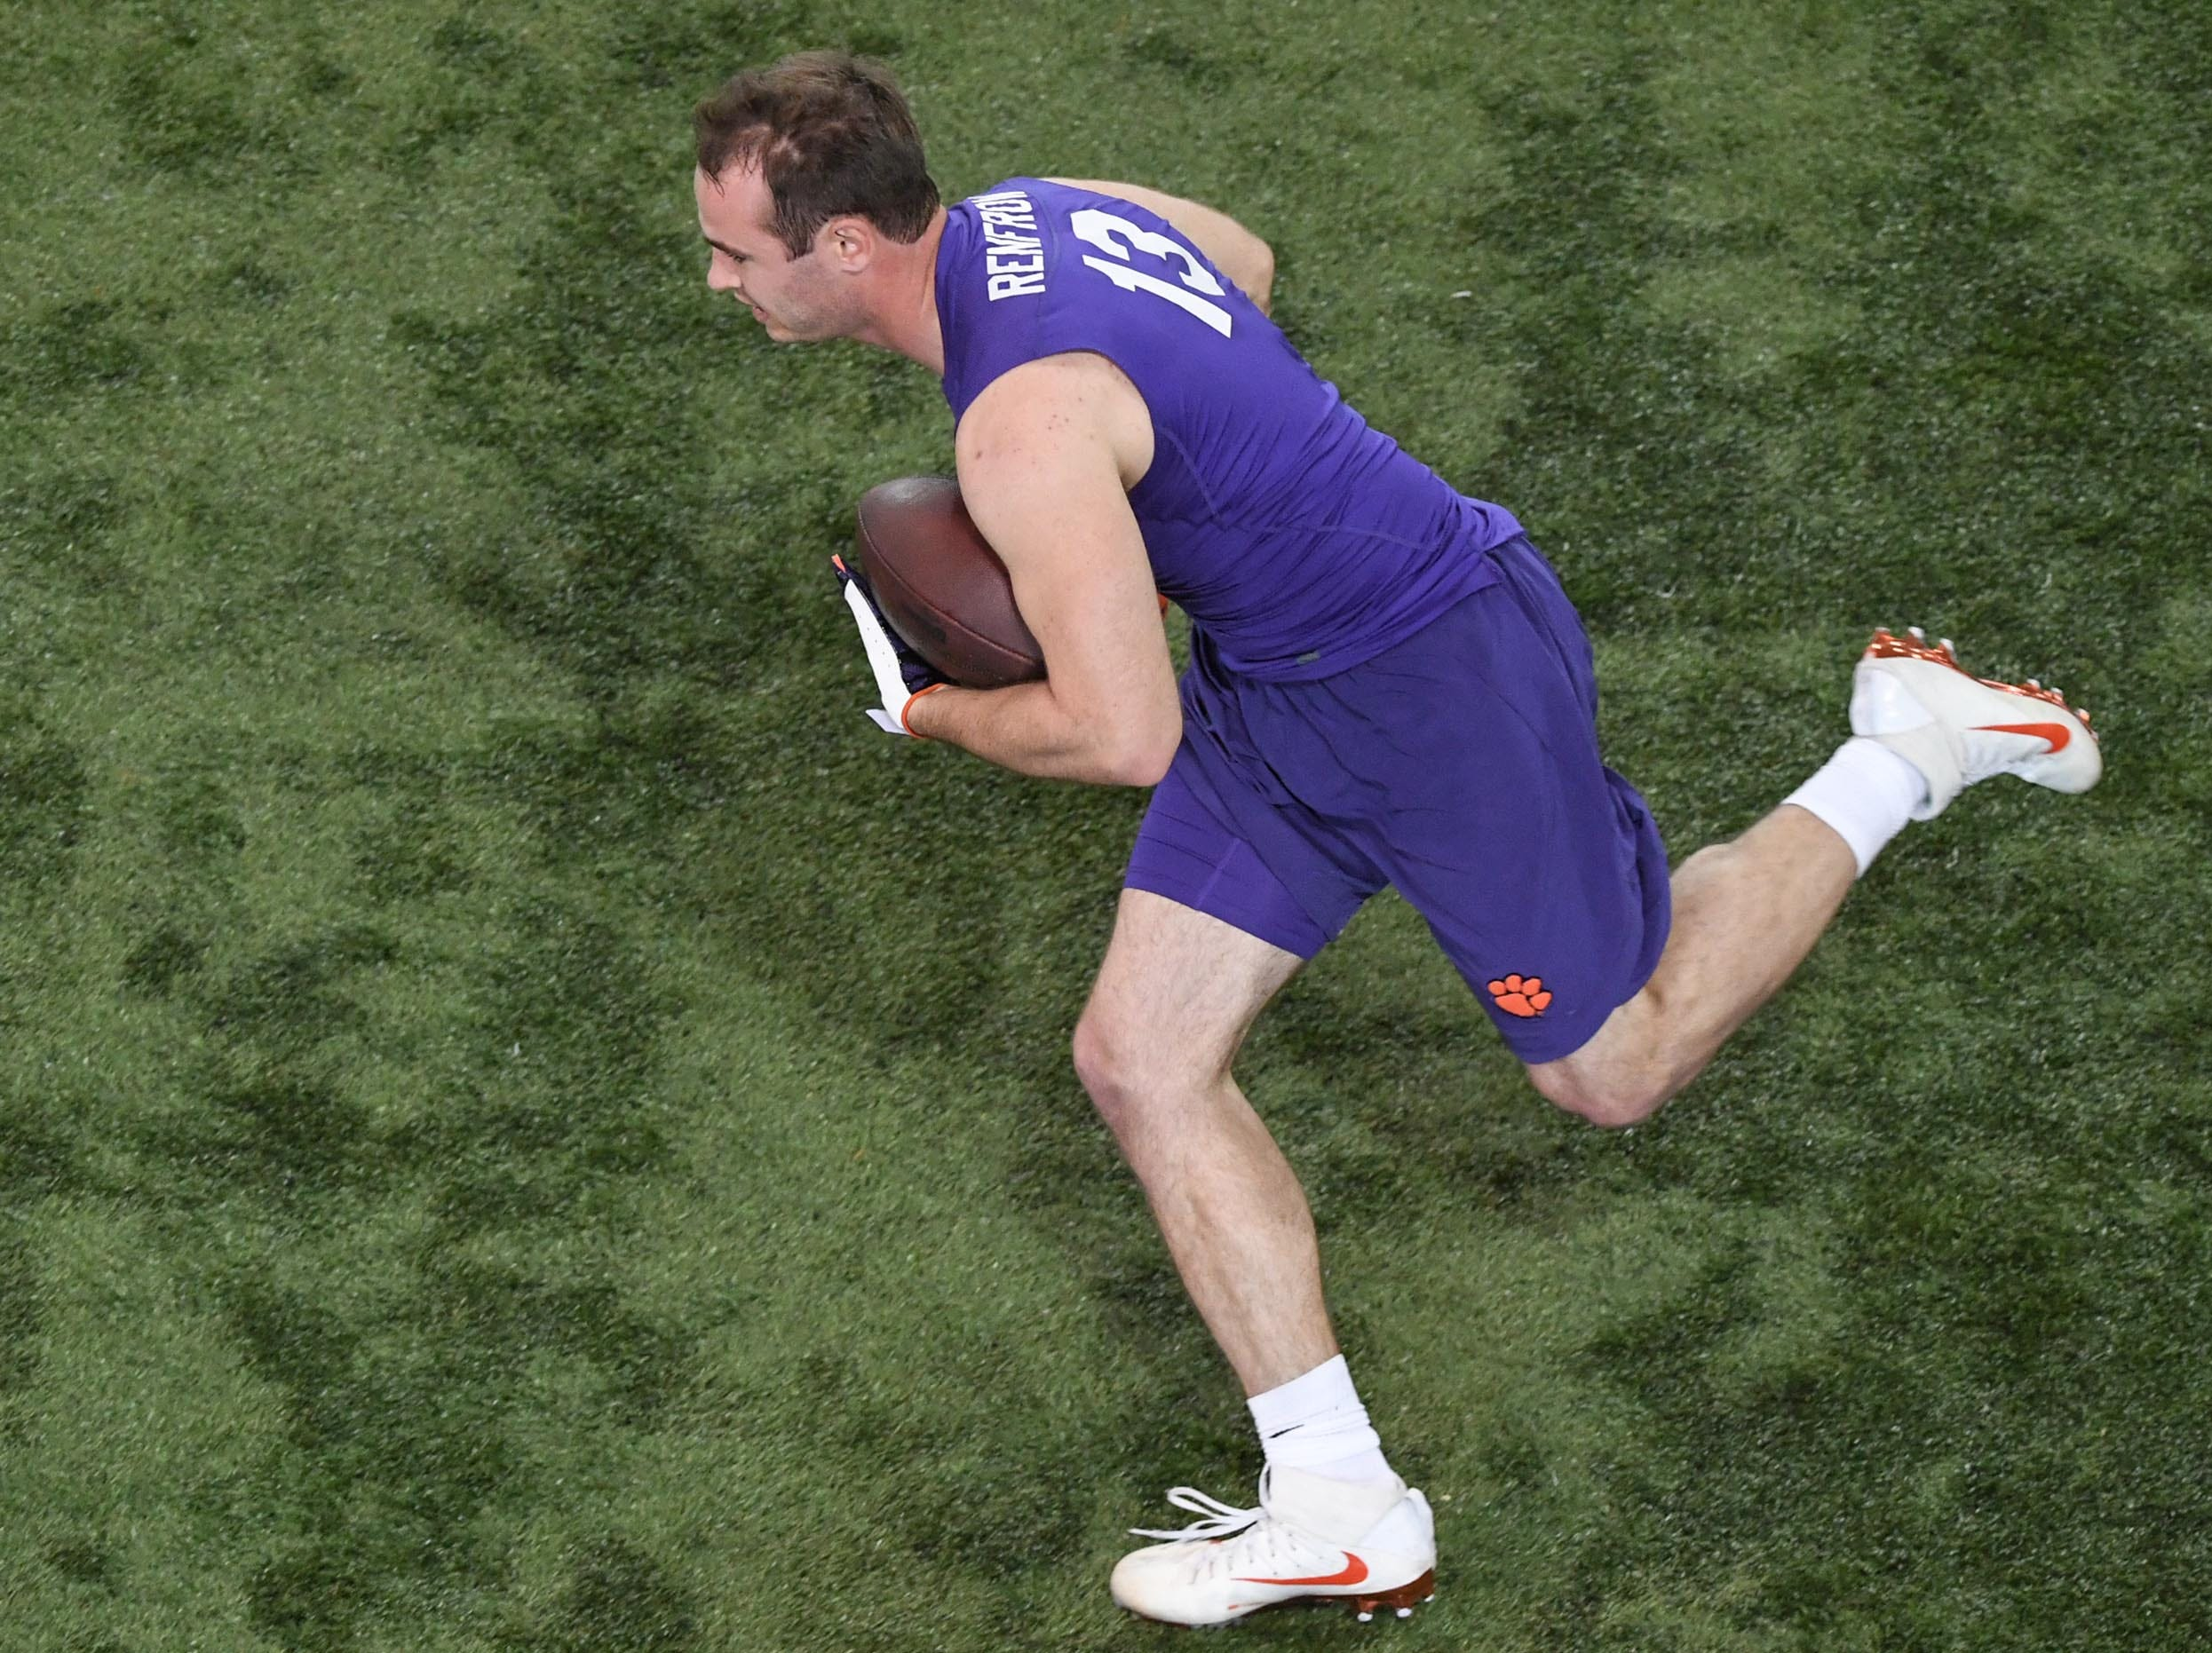 Wide receiver Hunter Renfrow runs after a catch during Clemson pro day at the Poe Indoor Facility in Clemson Thursday, March 14, 2019.